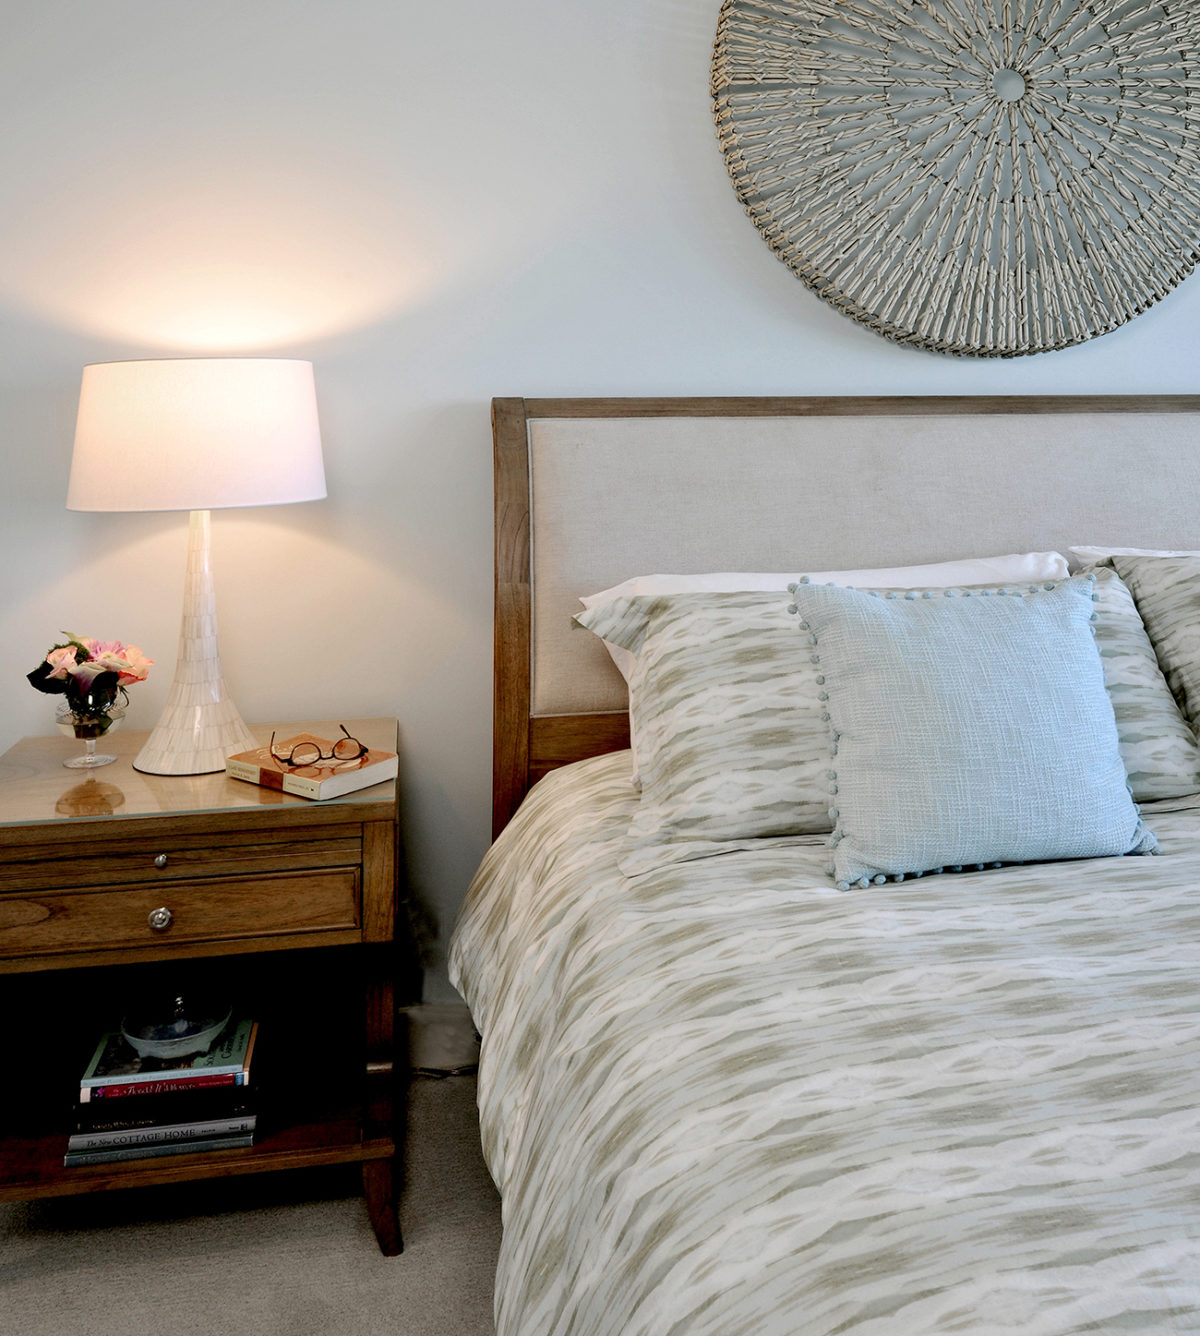 Close up of the beach house bedroom showing rattan wall decoration and capiz lamp on dark wood side table